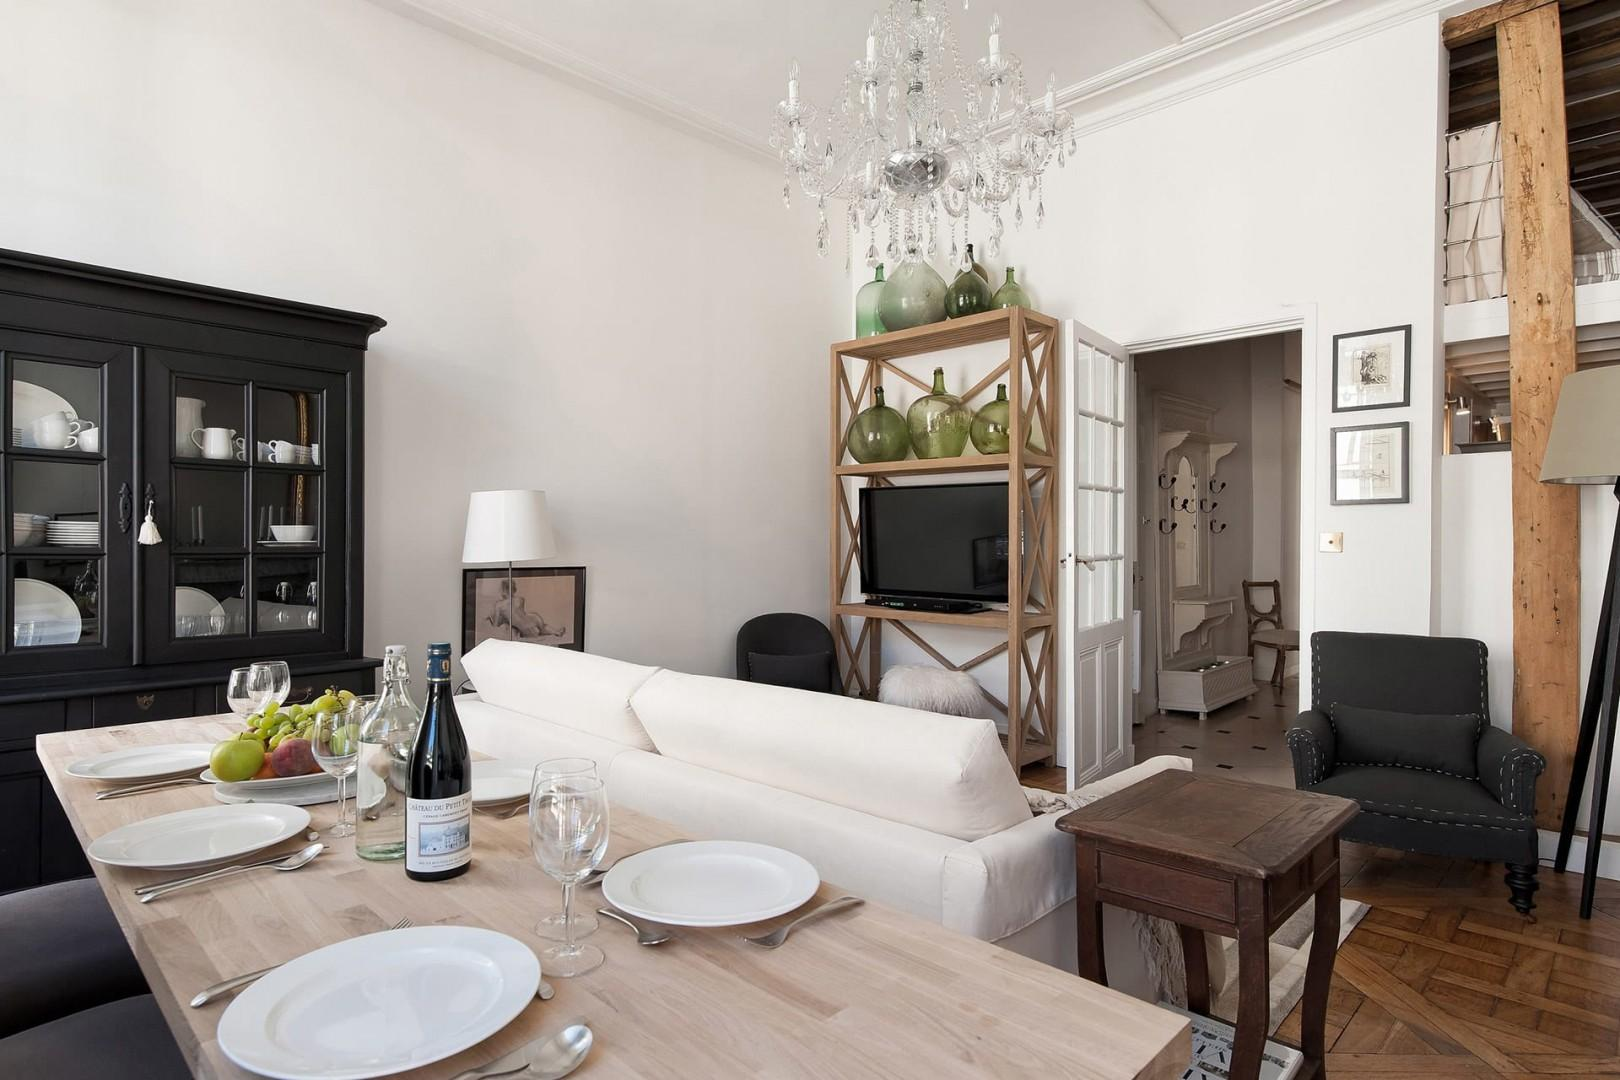 The sleek dining table is located in the open-plan living room.